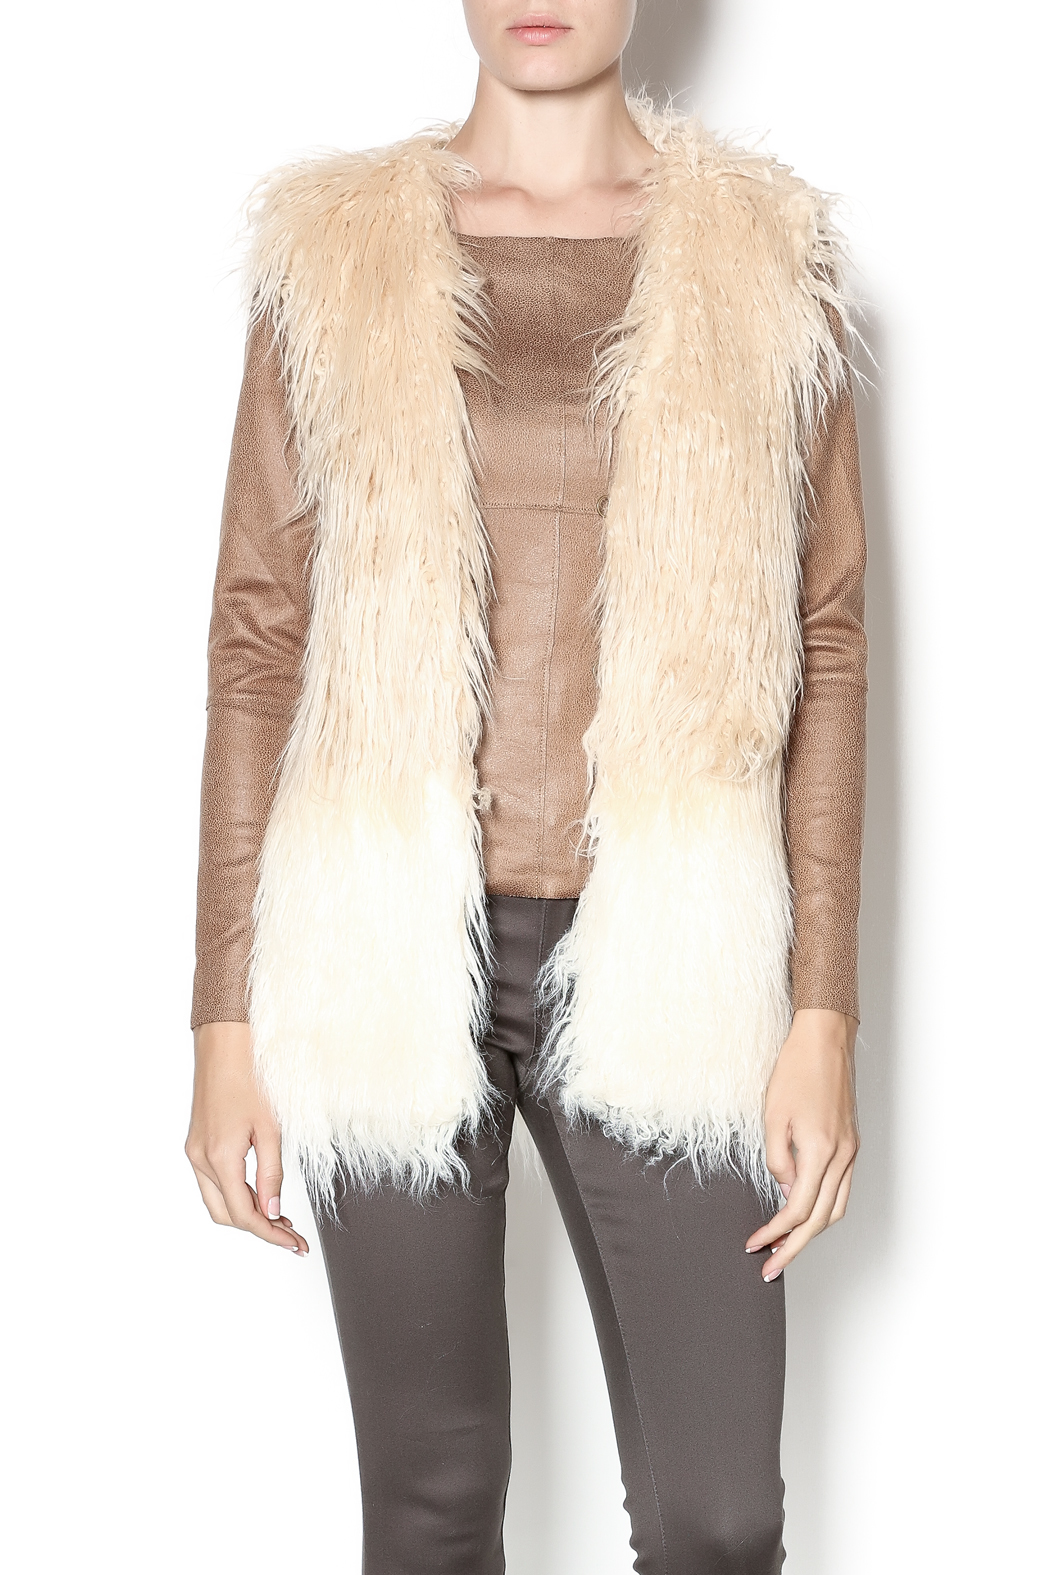 Heartloom Faux Fur Vest From Mississippi By Gypster Veil